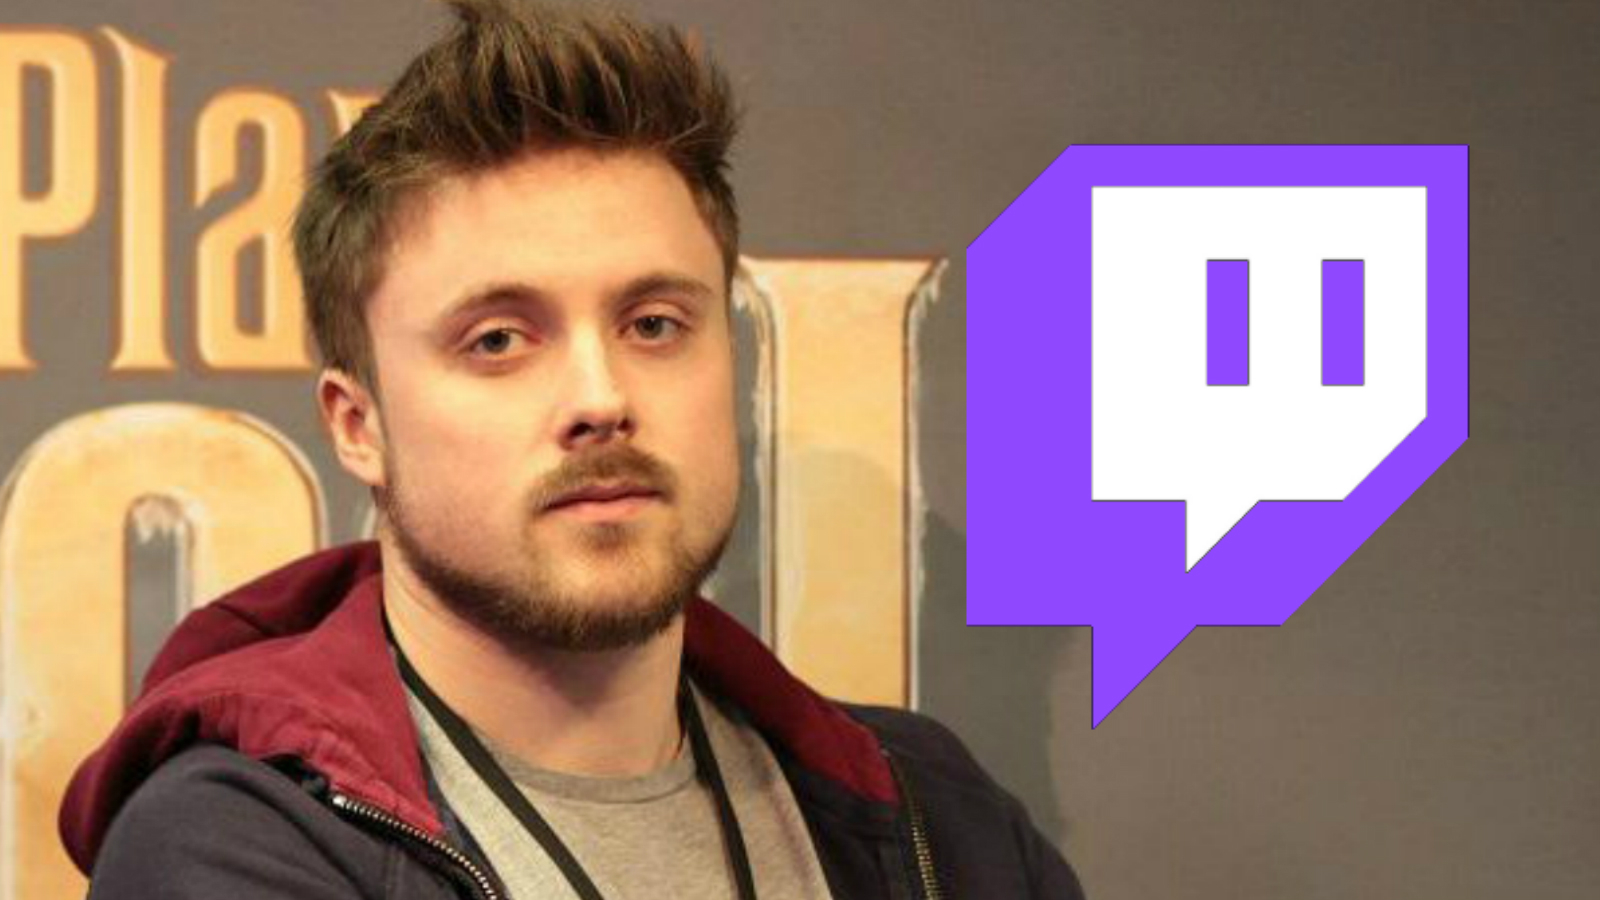 Forsen banned on Twitch because of misheard slur